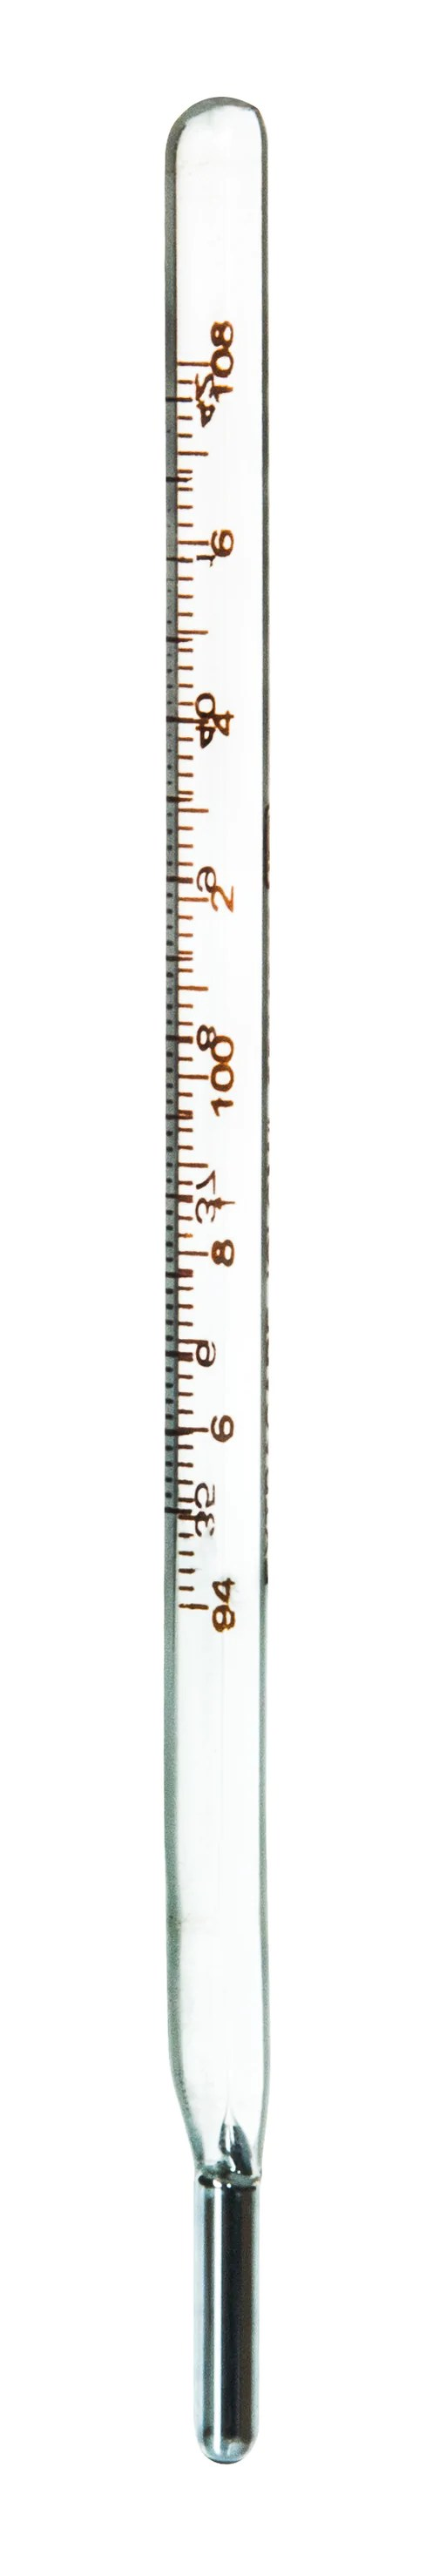 Thermometer Laboratory Apparatus Thermometers Eisco Labs